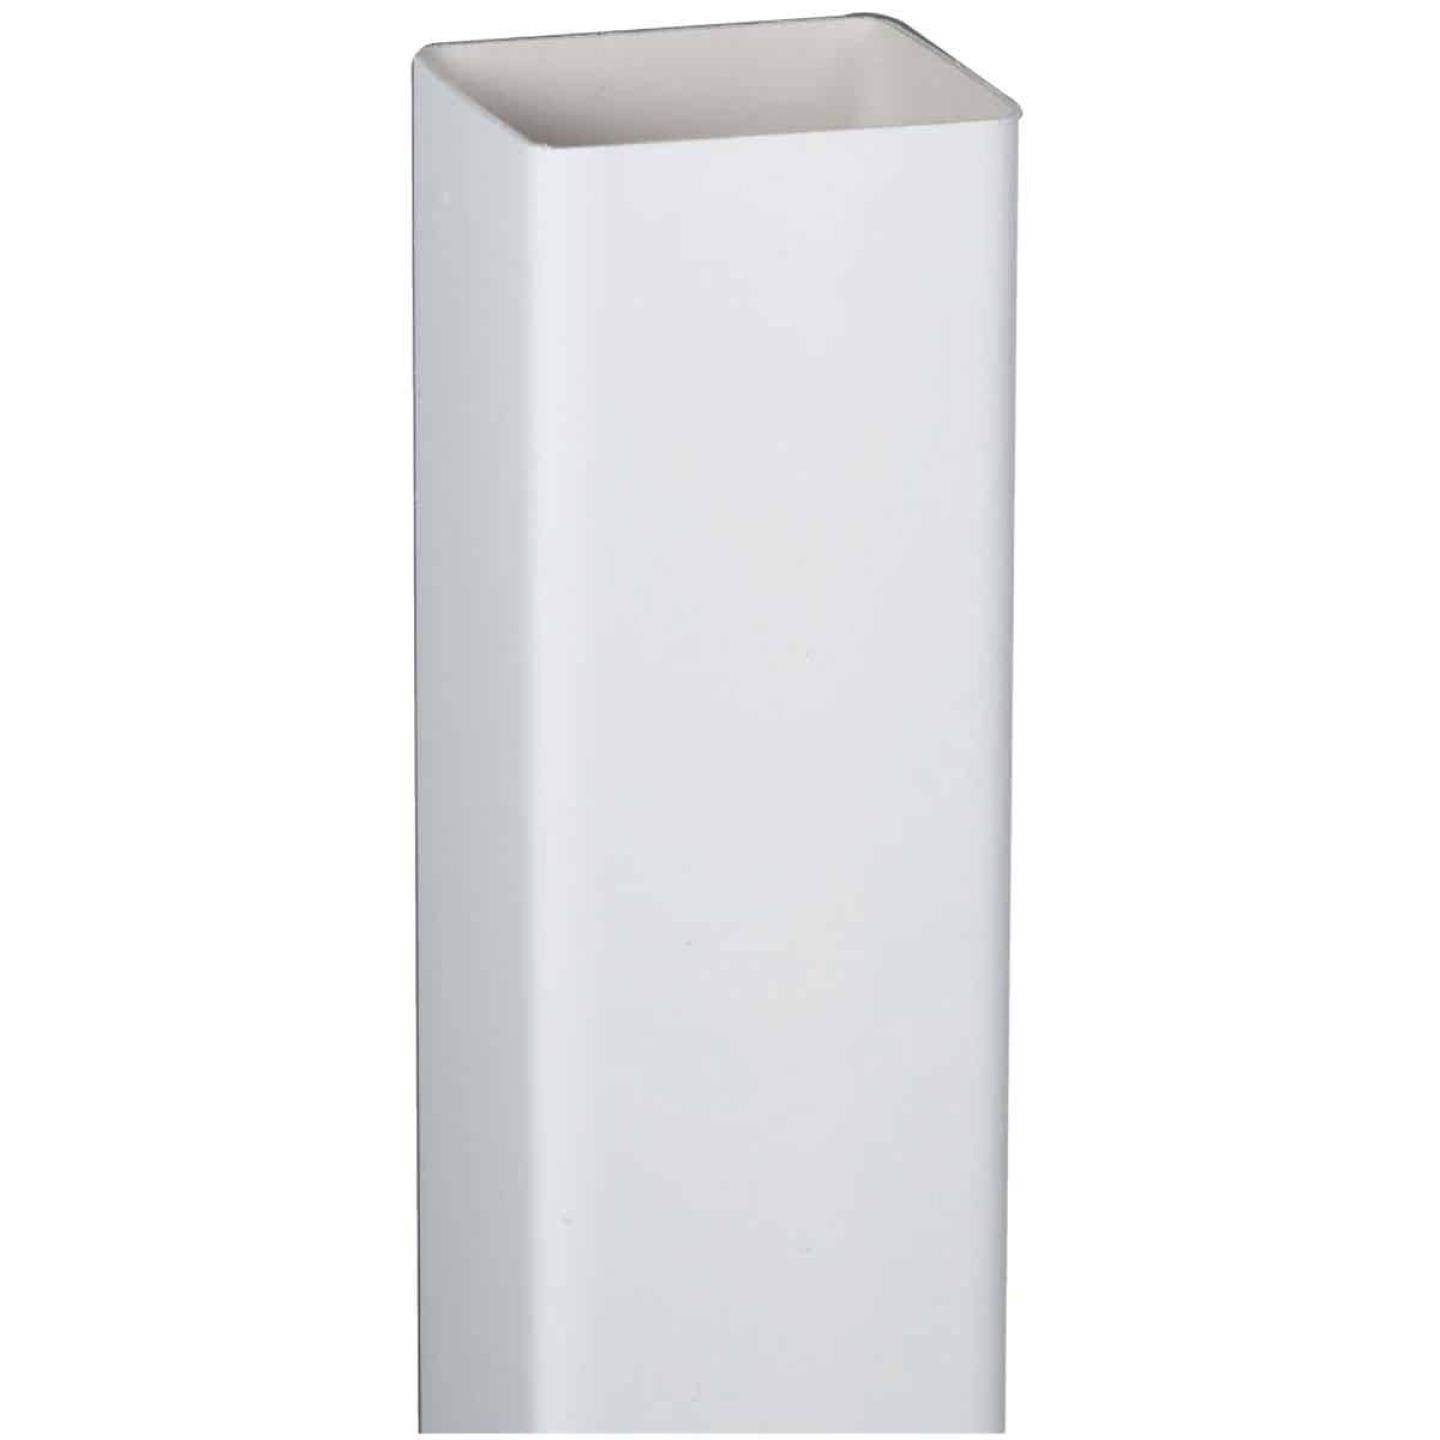 Amerimax 2 In. Square x 10 Ft. White Vinyl Downspout Image 1